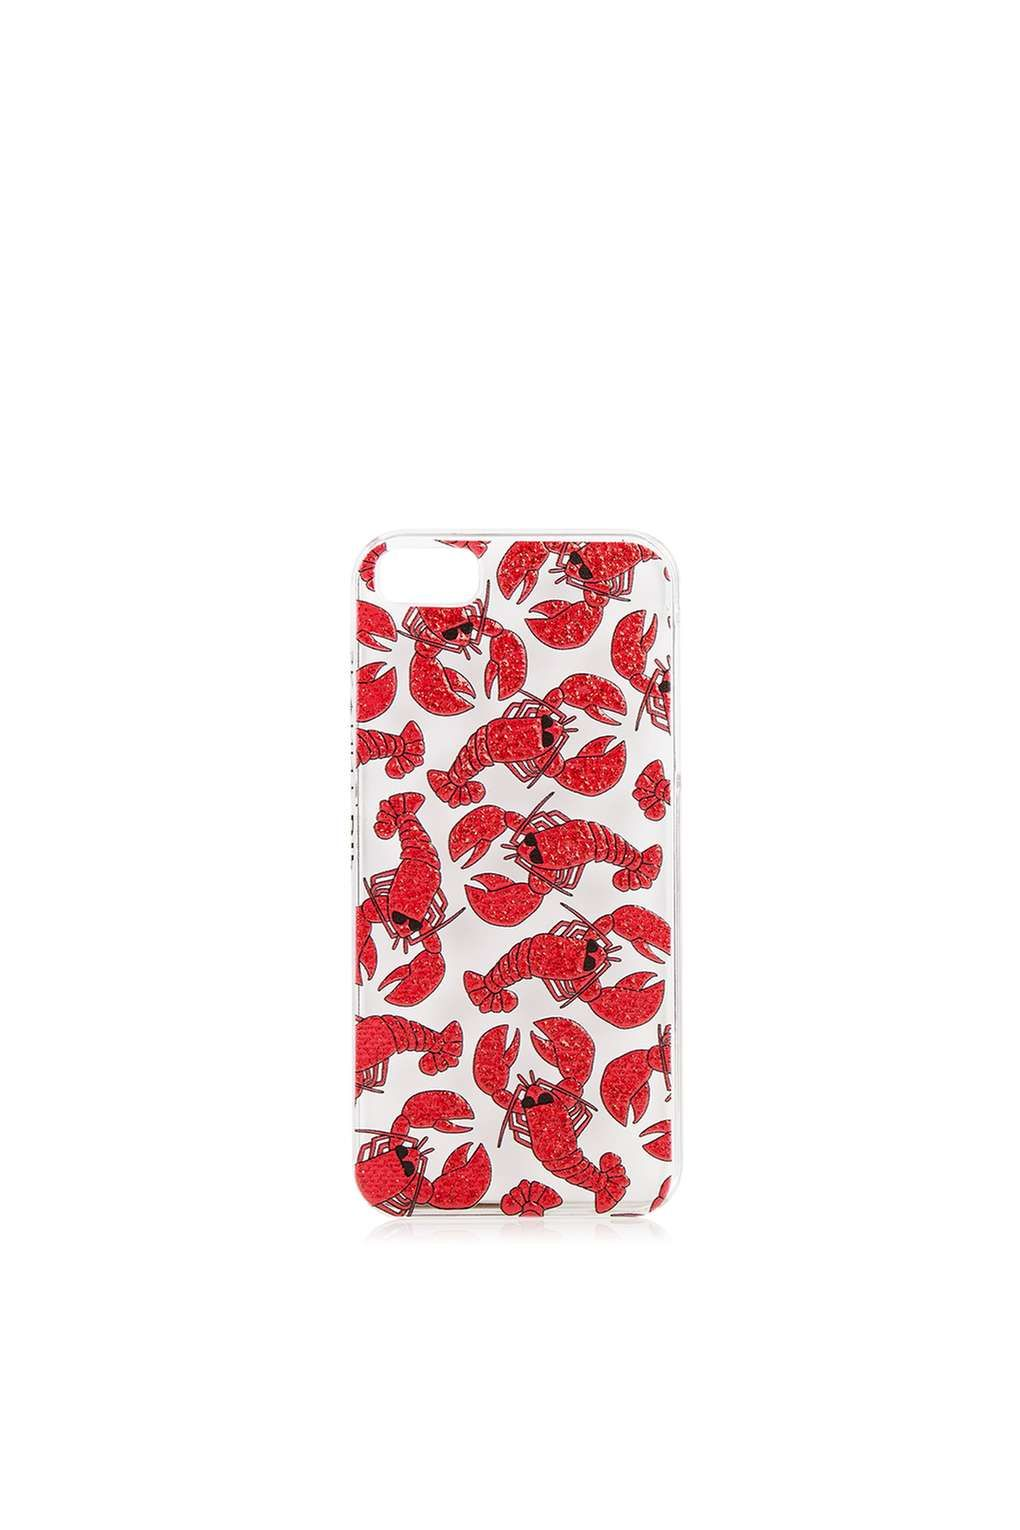 pretty nice aca1f eb76f Lobster iPhone 5 Case by Skinny Dip in 2019 | Phone cases | Iphone 5 ...